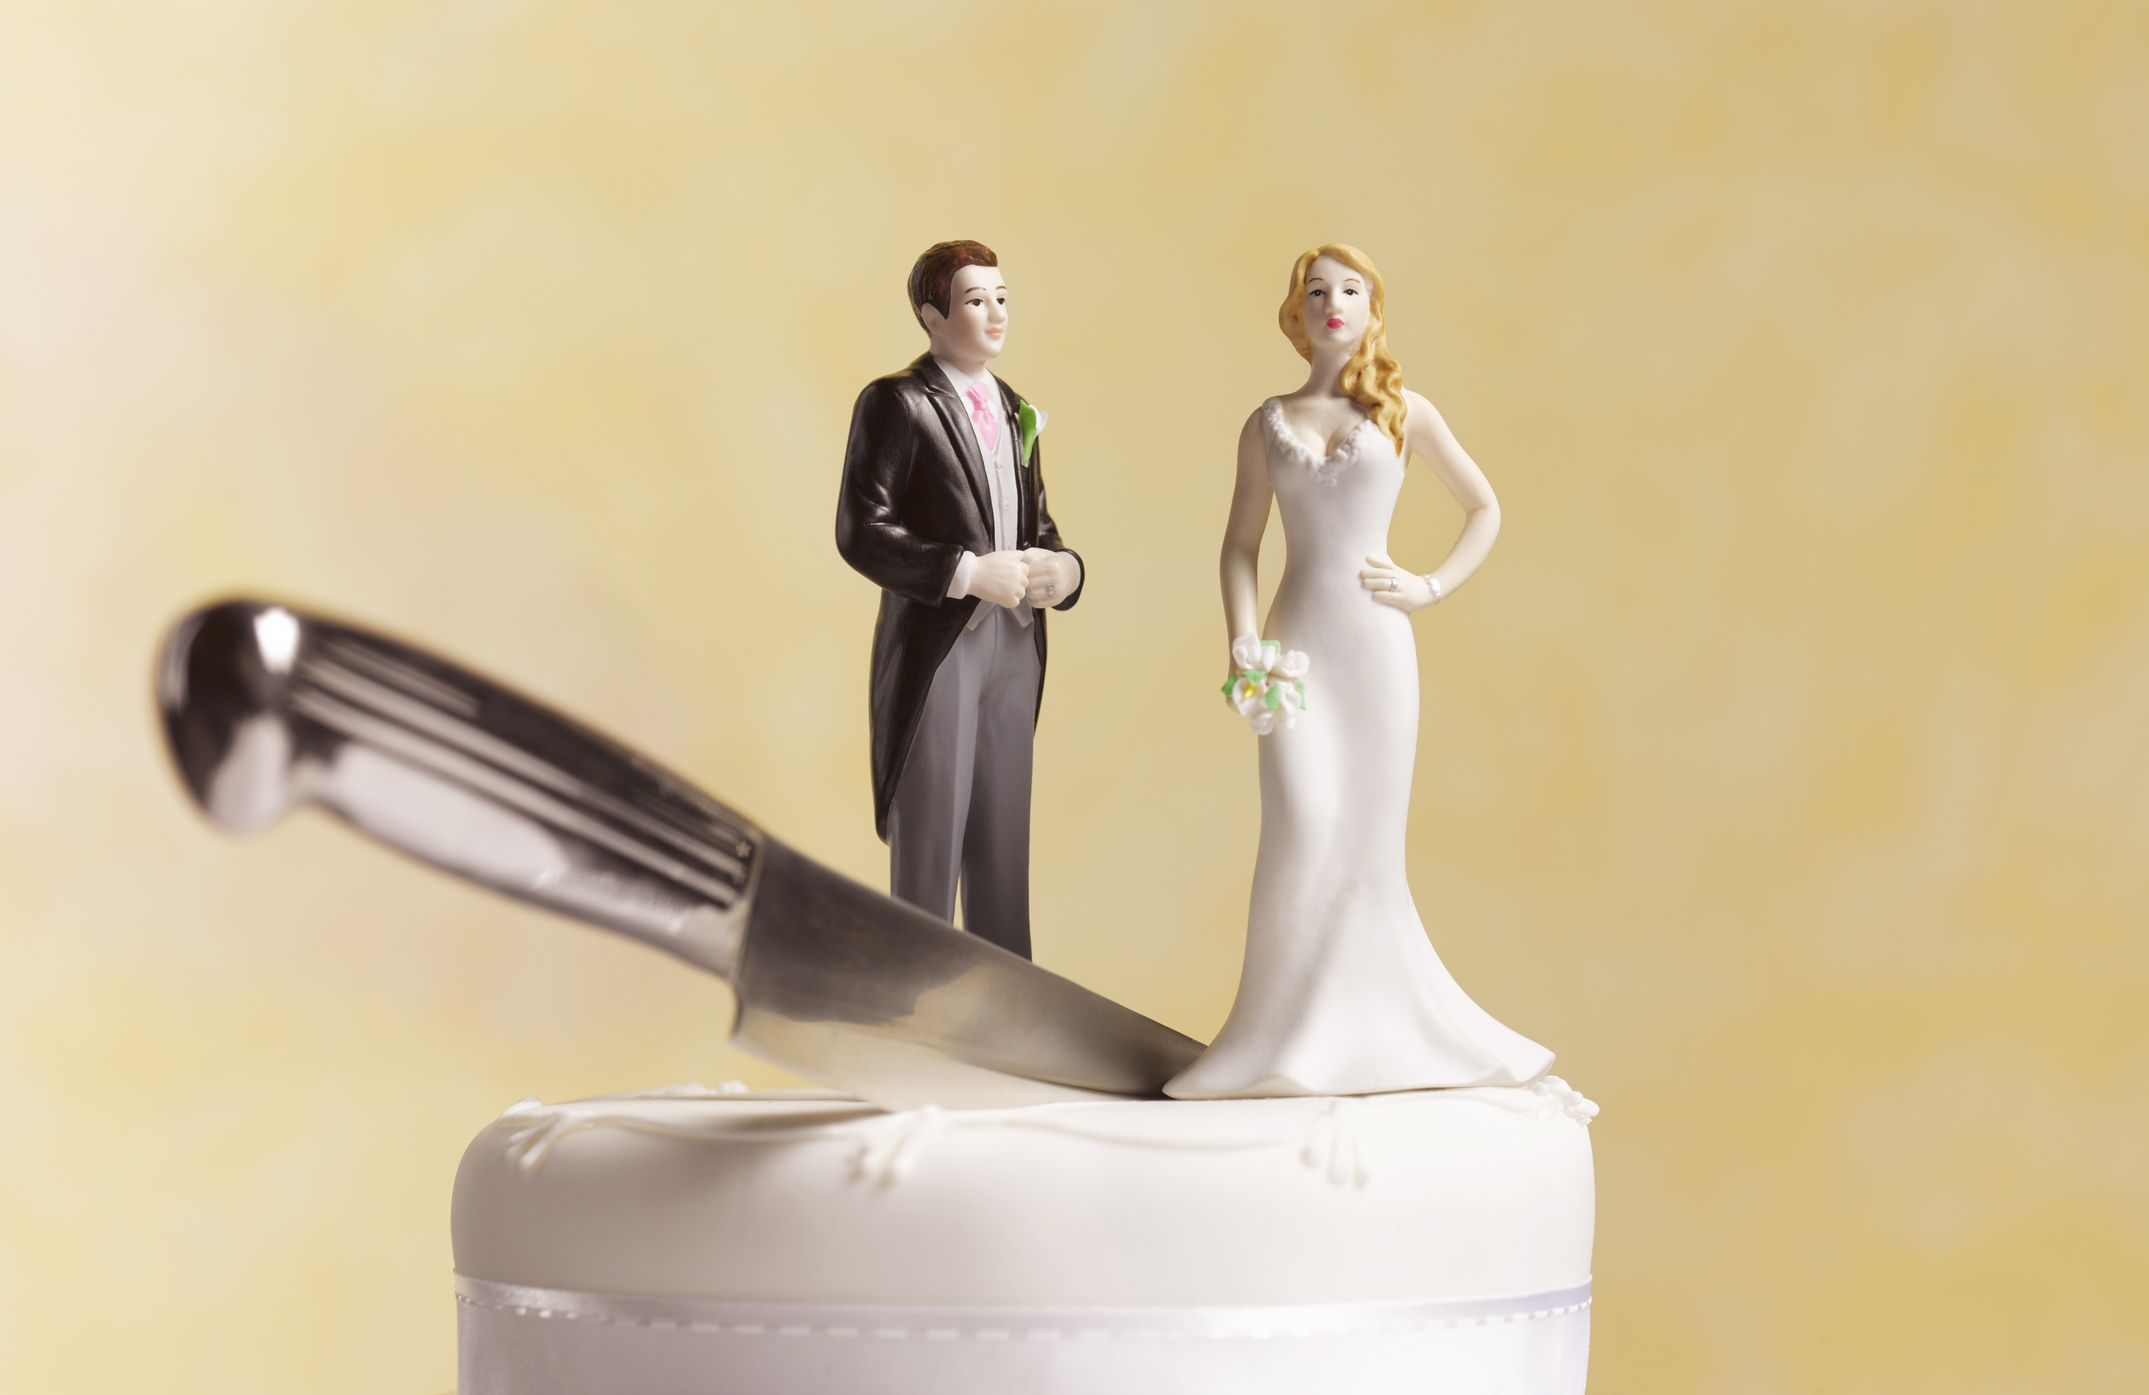 I Hate My Husband - What to Do If You Resent Your Partner